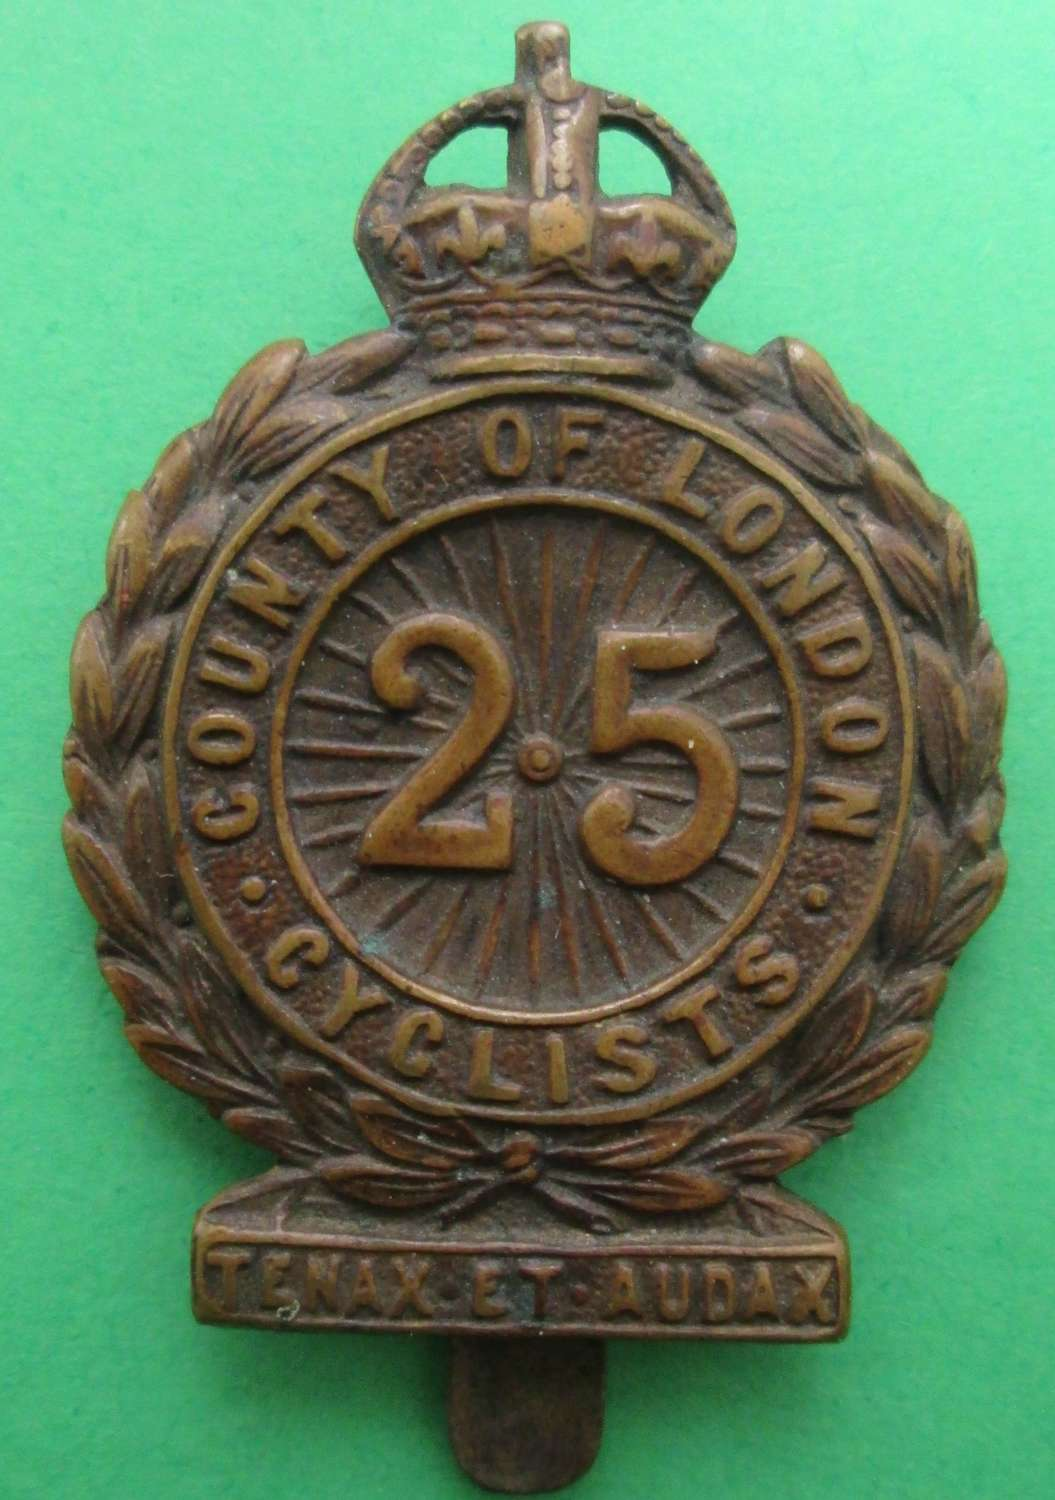 A 25TH COUNTY OF LONDON CAP BADGE